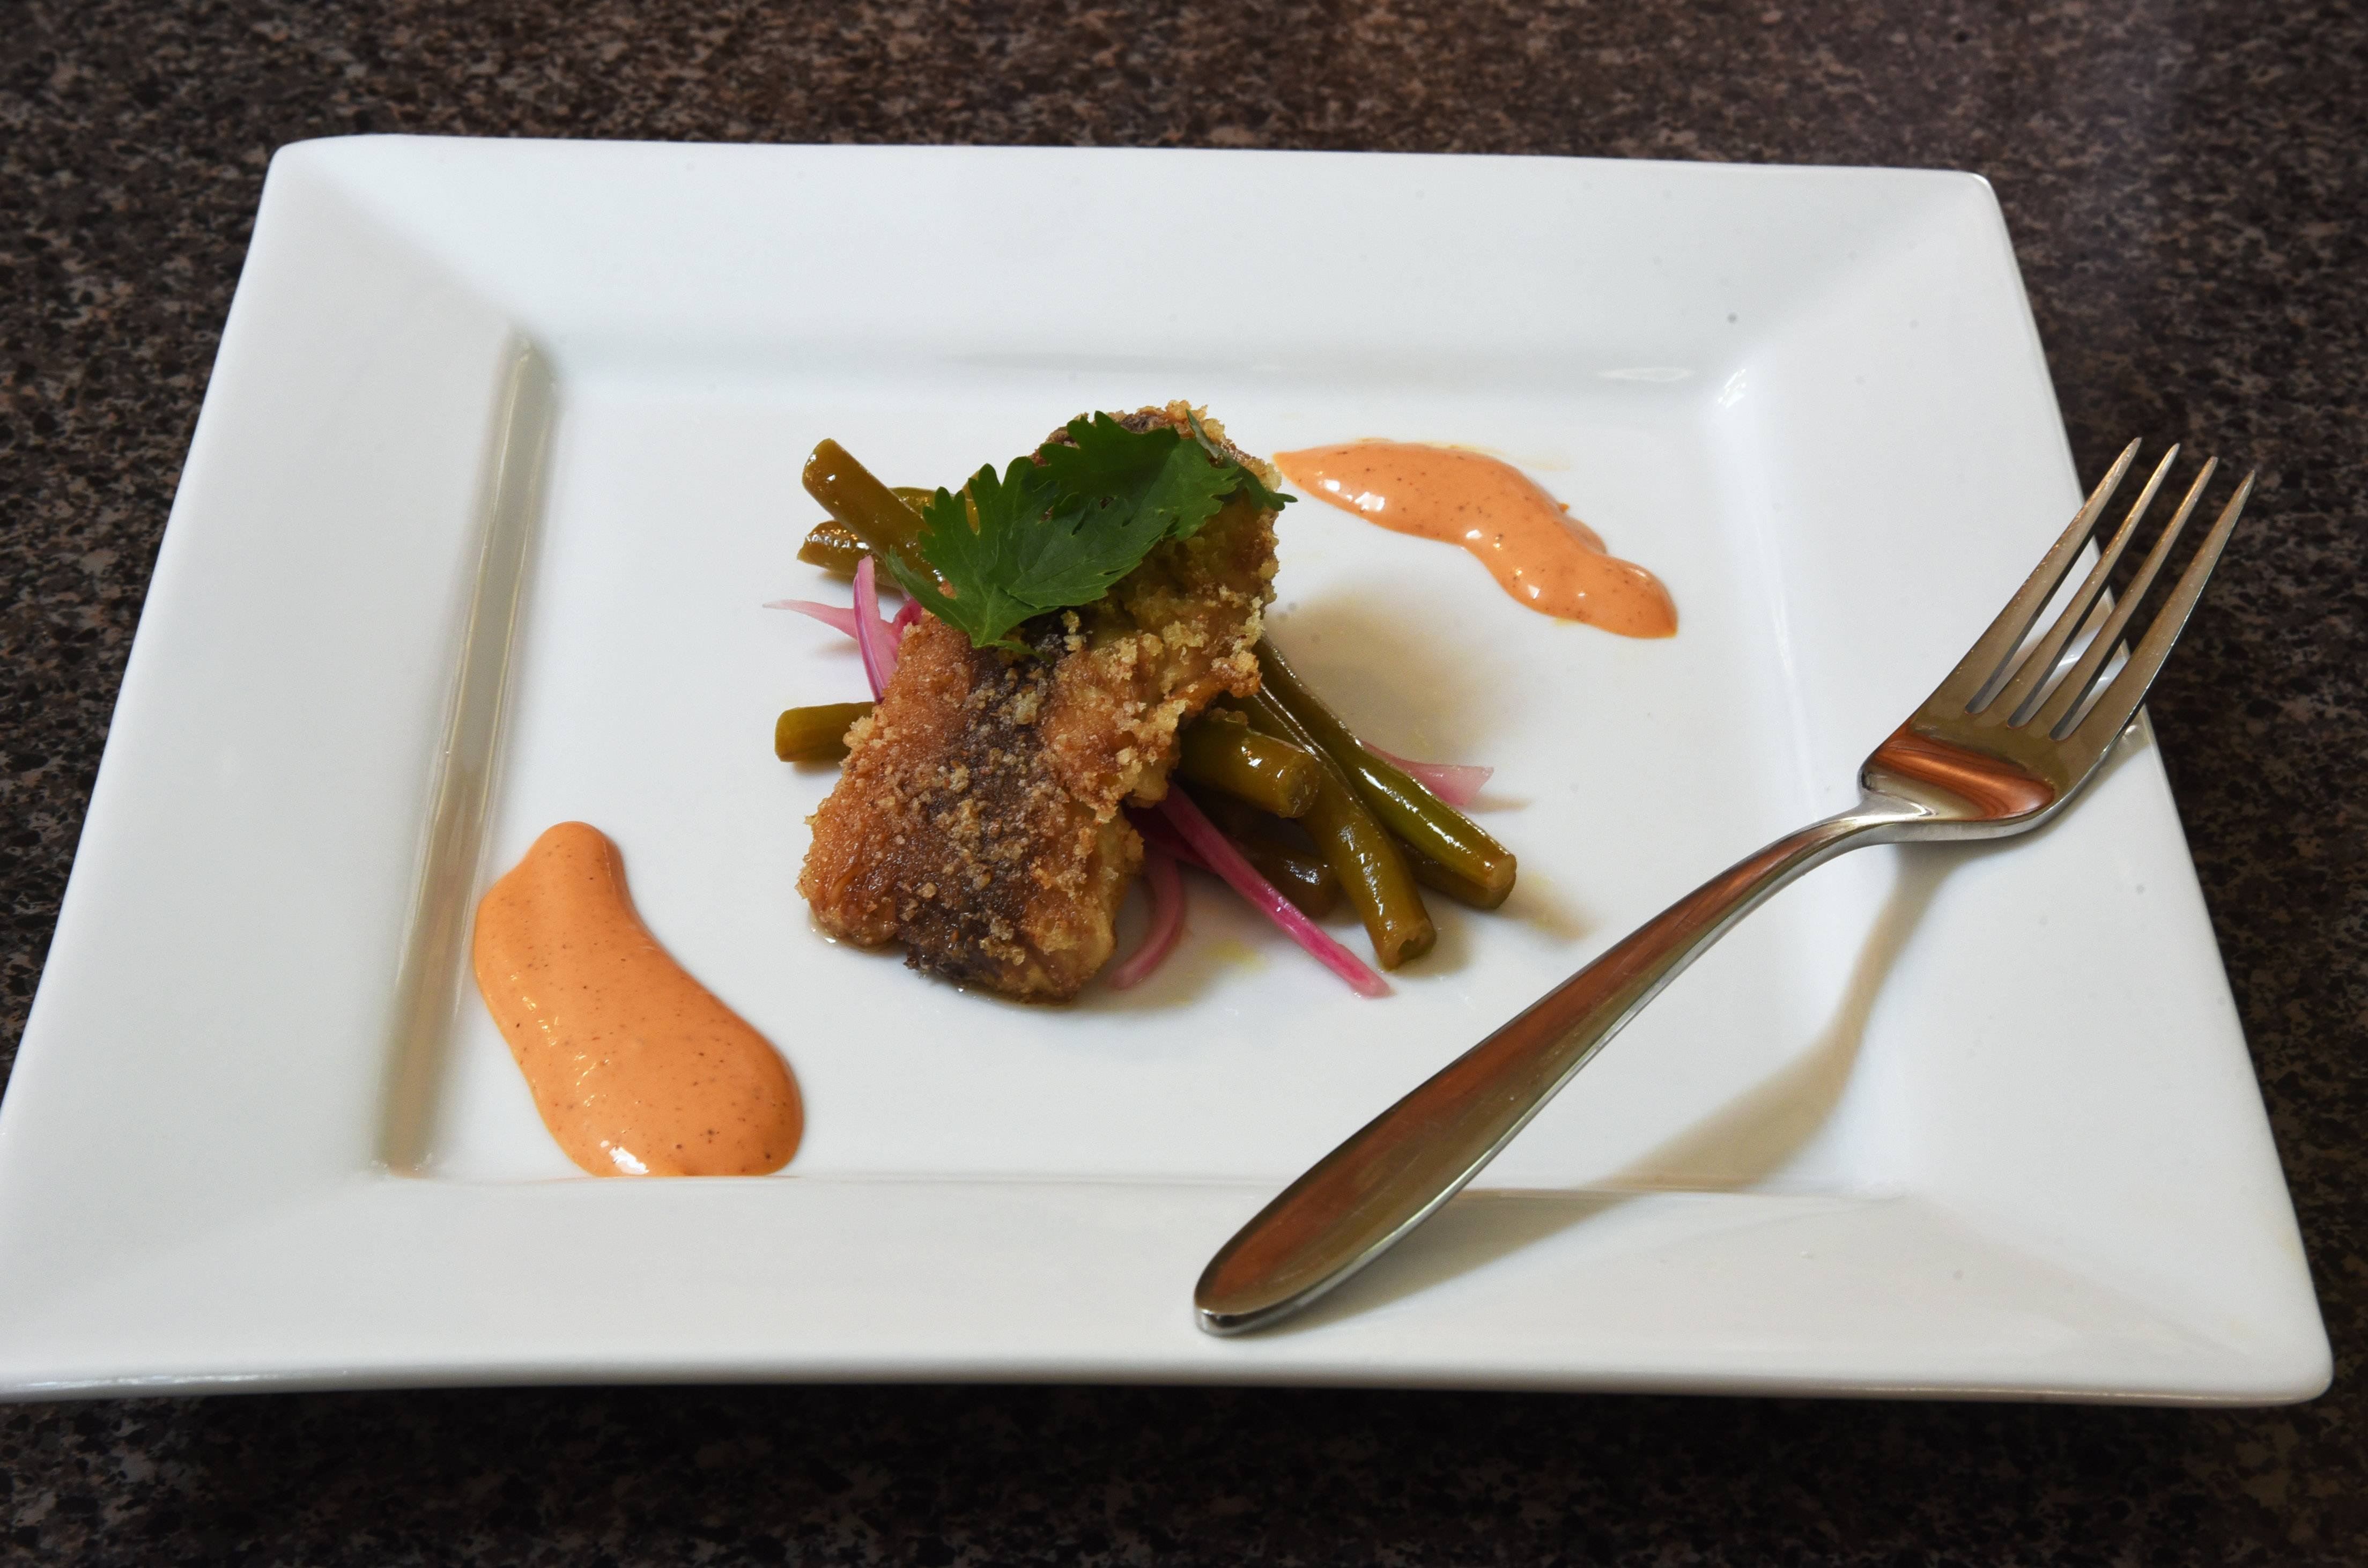 Daily Herald Cook of the Week Challenge contestant Joe Wachter of unincorporated Lake Zurich made Pan-fried Mackerel Fillets With Citrus-Pickled Green Beans And Achiote Mayonnaise.